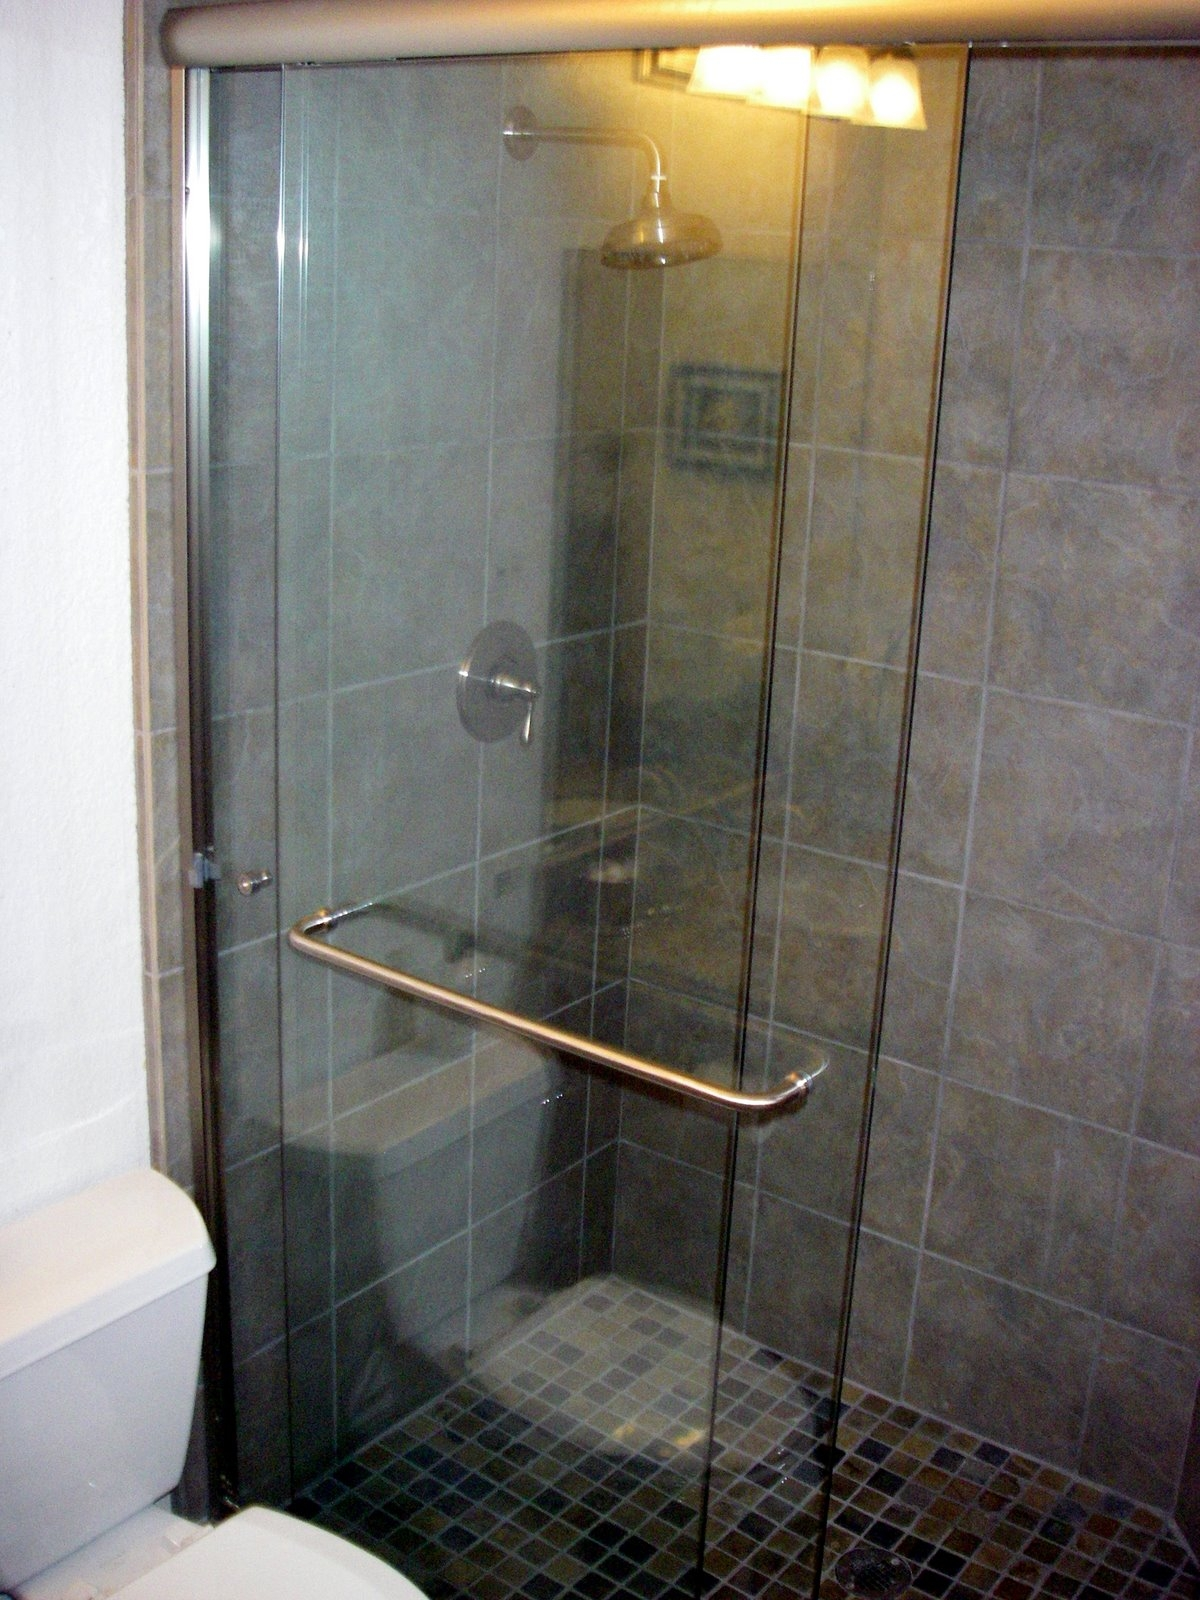 Acrylic Shower Door Towel Bartub to shower conversions walk in showers acrylic shower